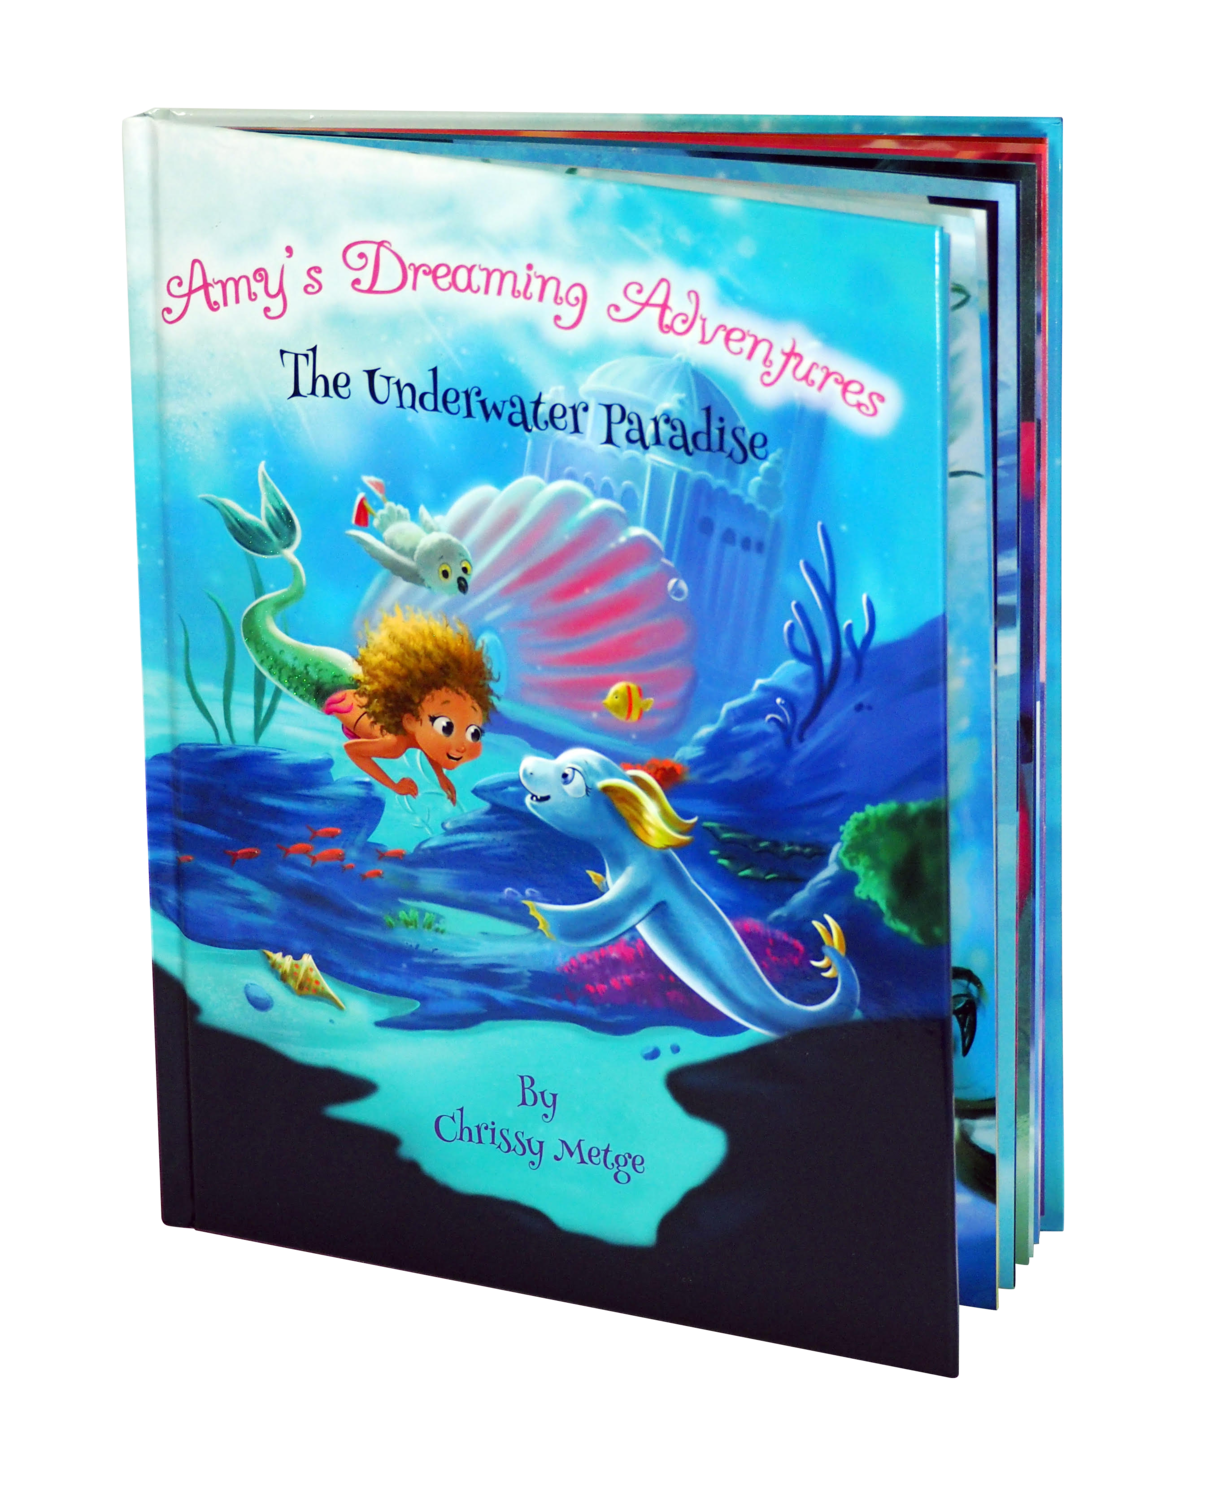 Amy's Dreaming Adventures - The Underwater Paradise - LIMITED EDITION